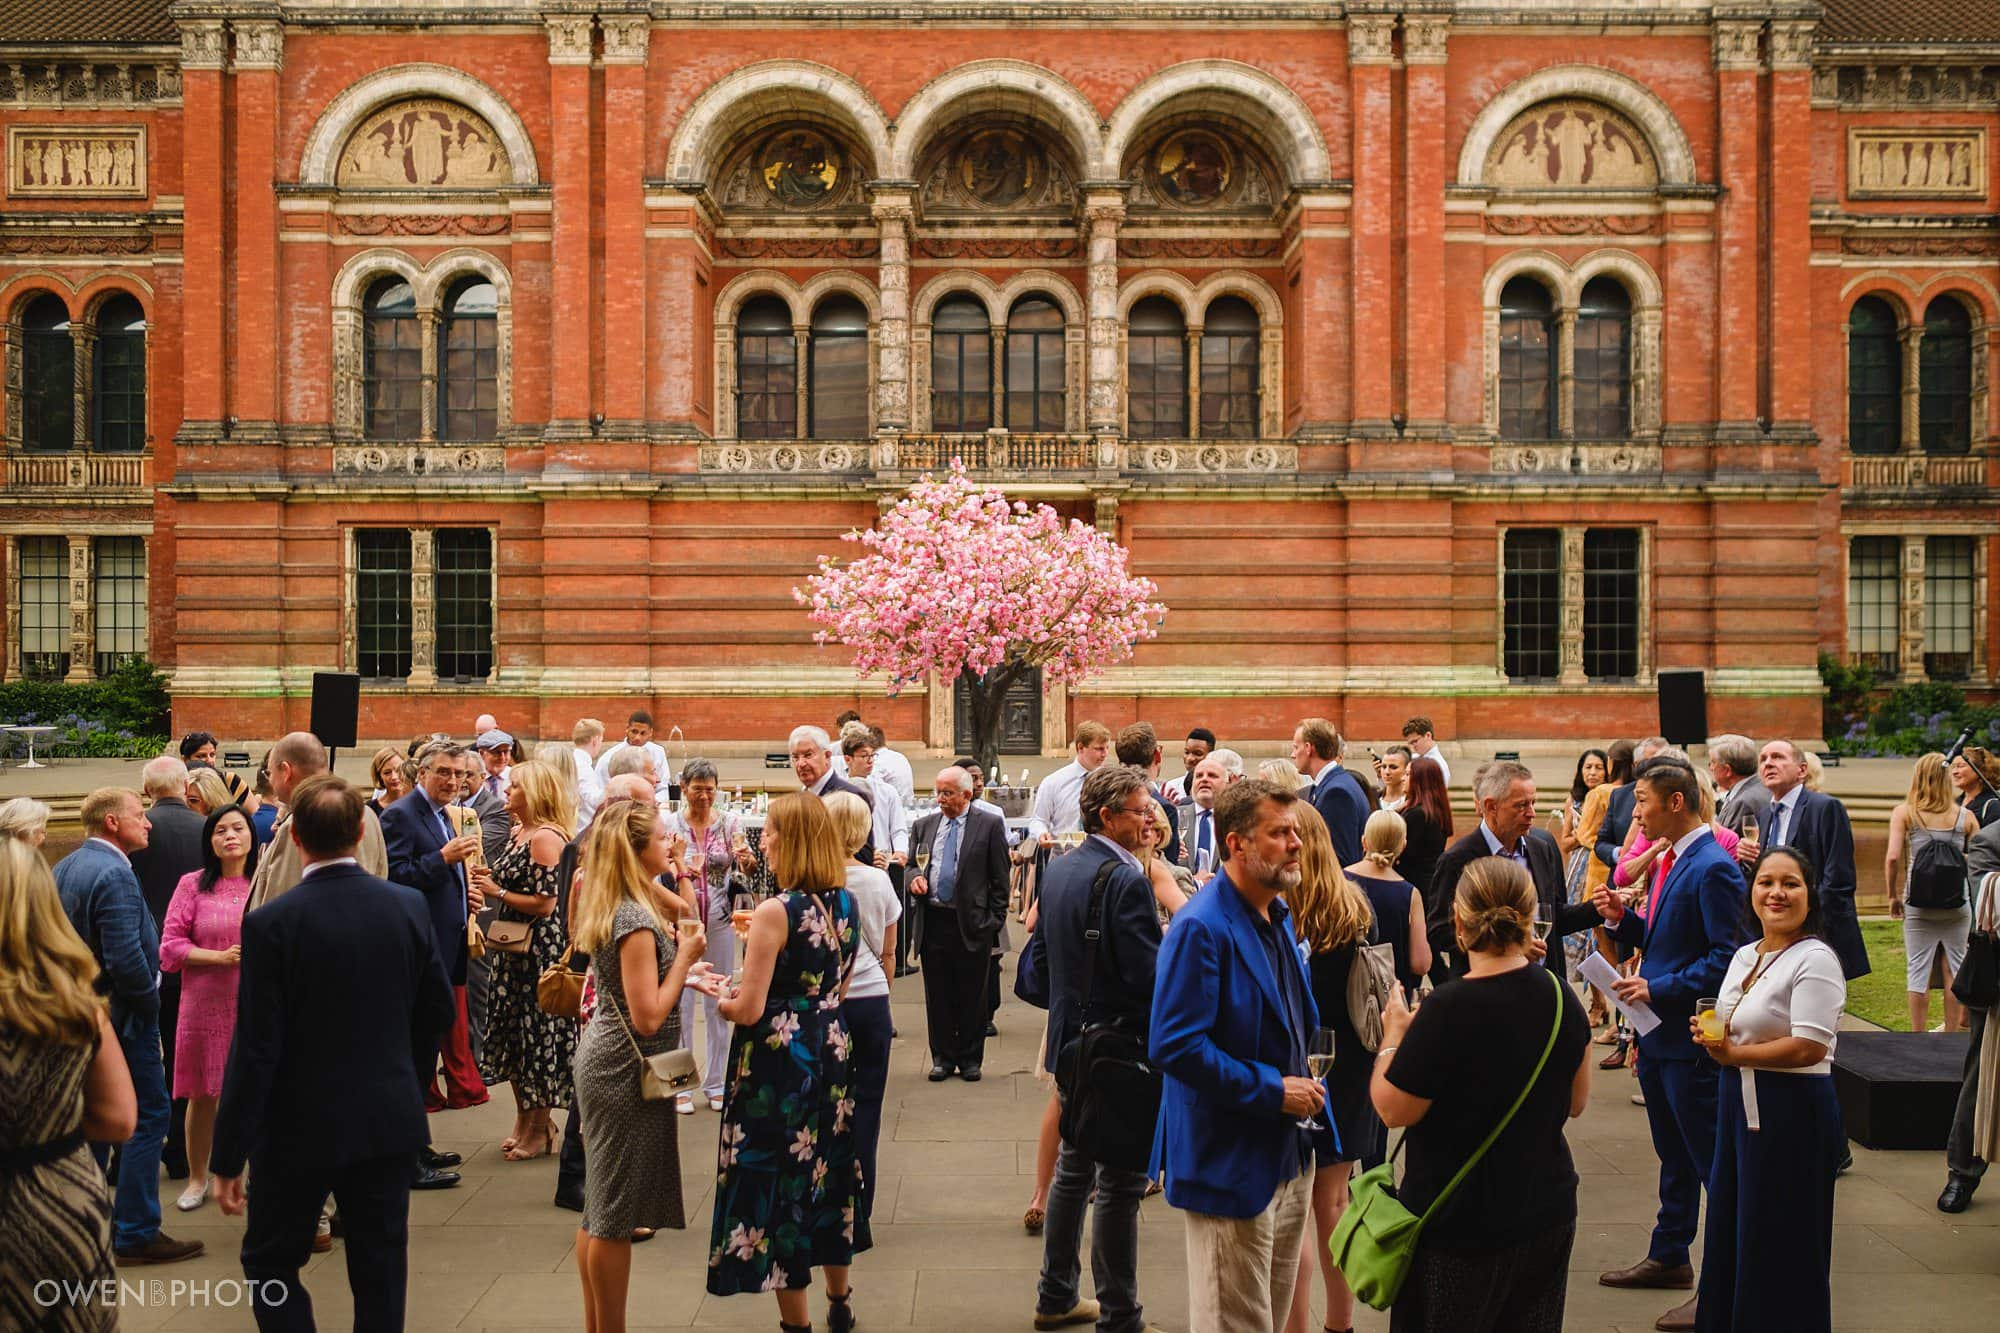 victoria albert event photographer london 016 - Summer party at the V&A Museum